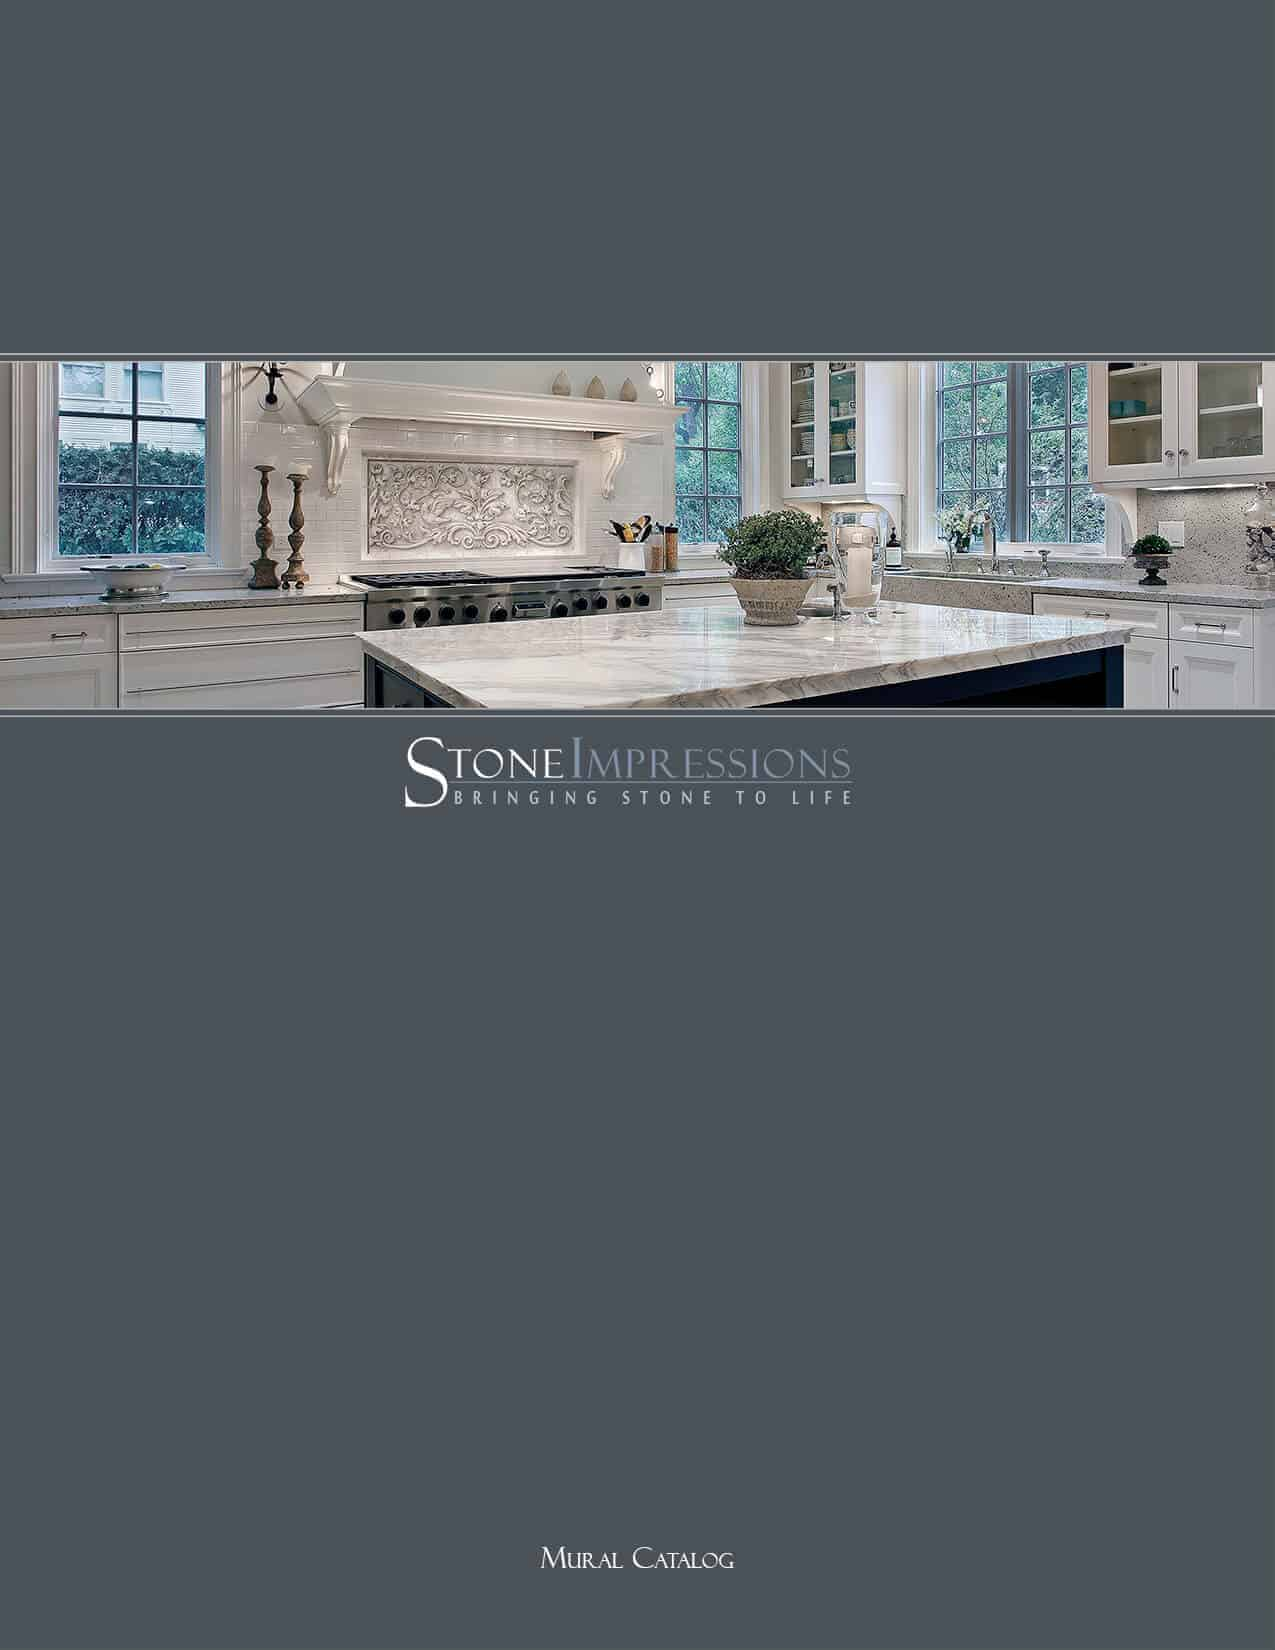 Cover Photo of StoneImpressions Mural Catalog